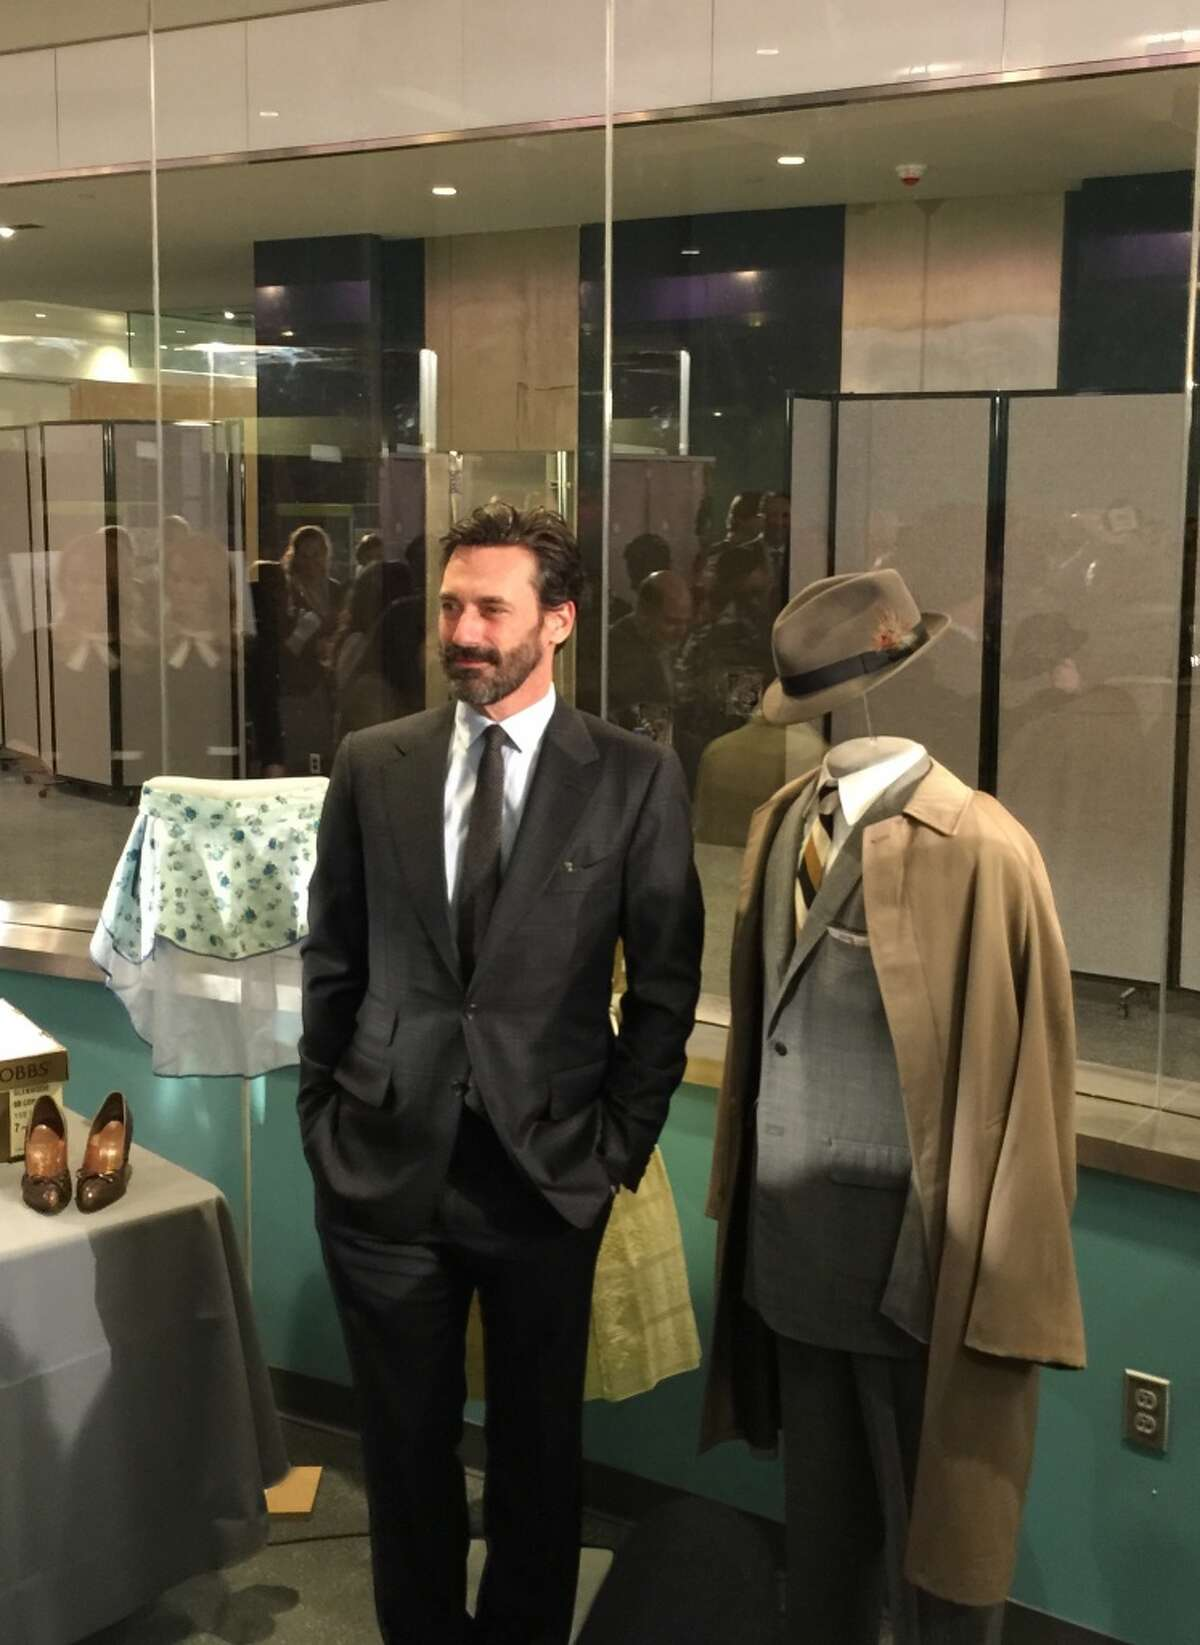 Actor Hamm poses next to one of his signature Don Draper suits.